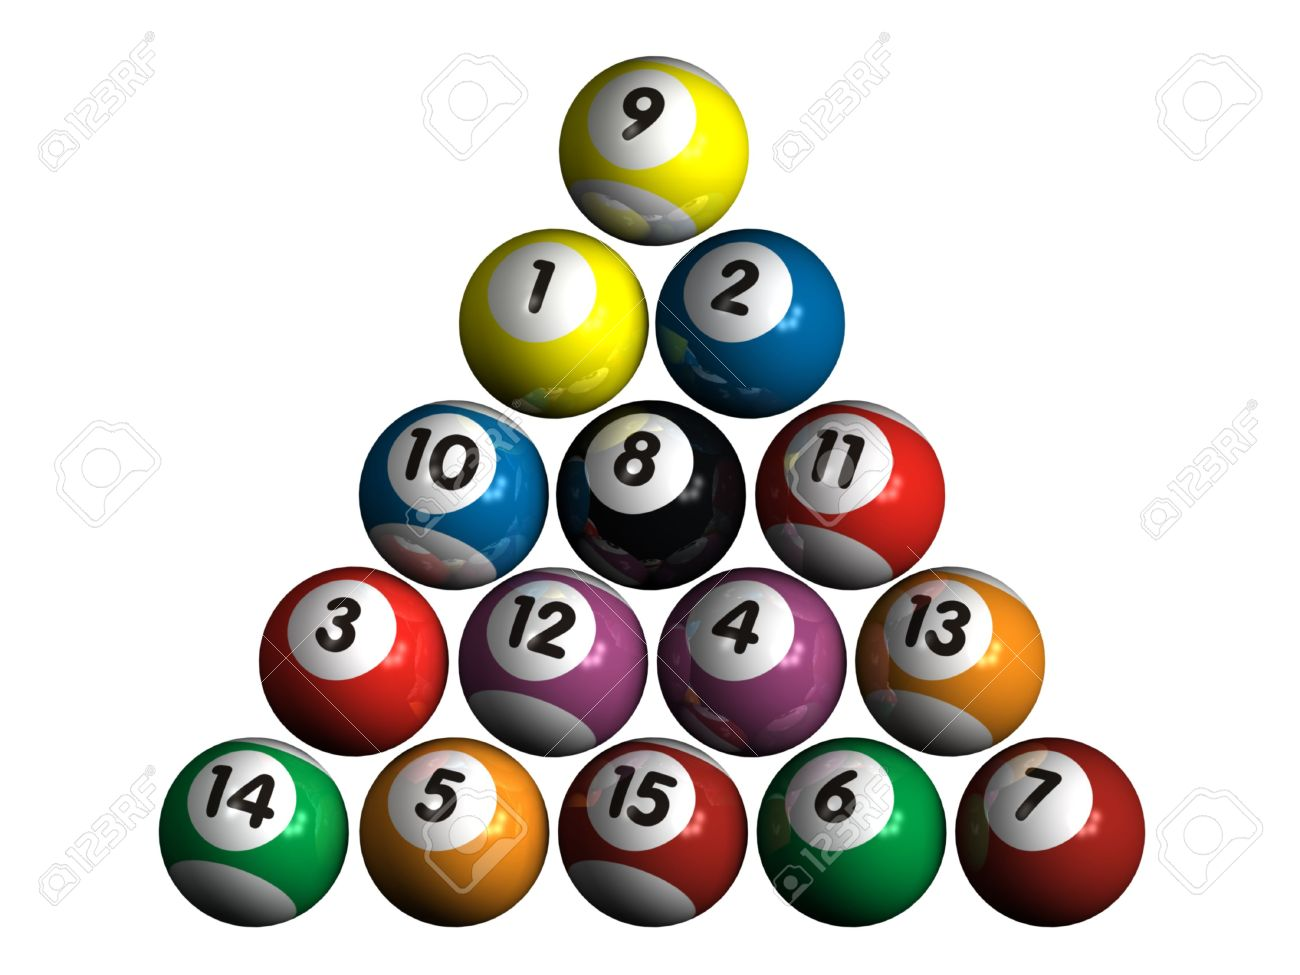 15 isolated 3d pool balls stock photo, picture and royalty free